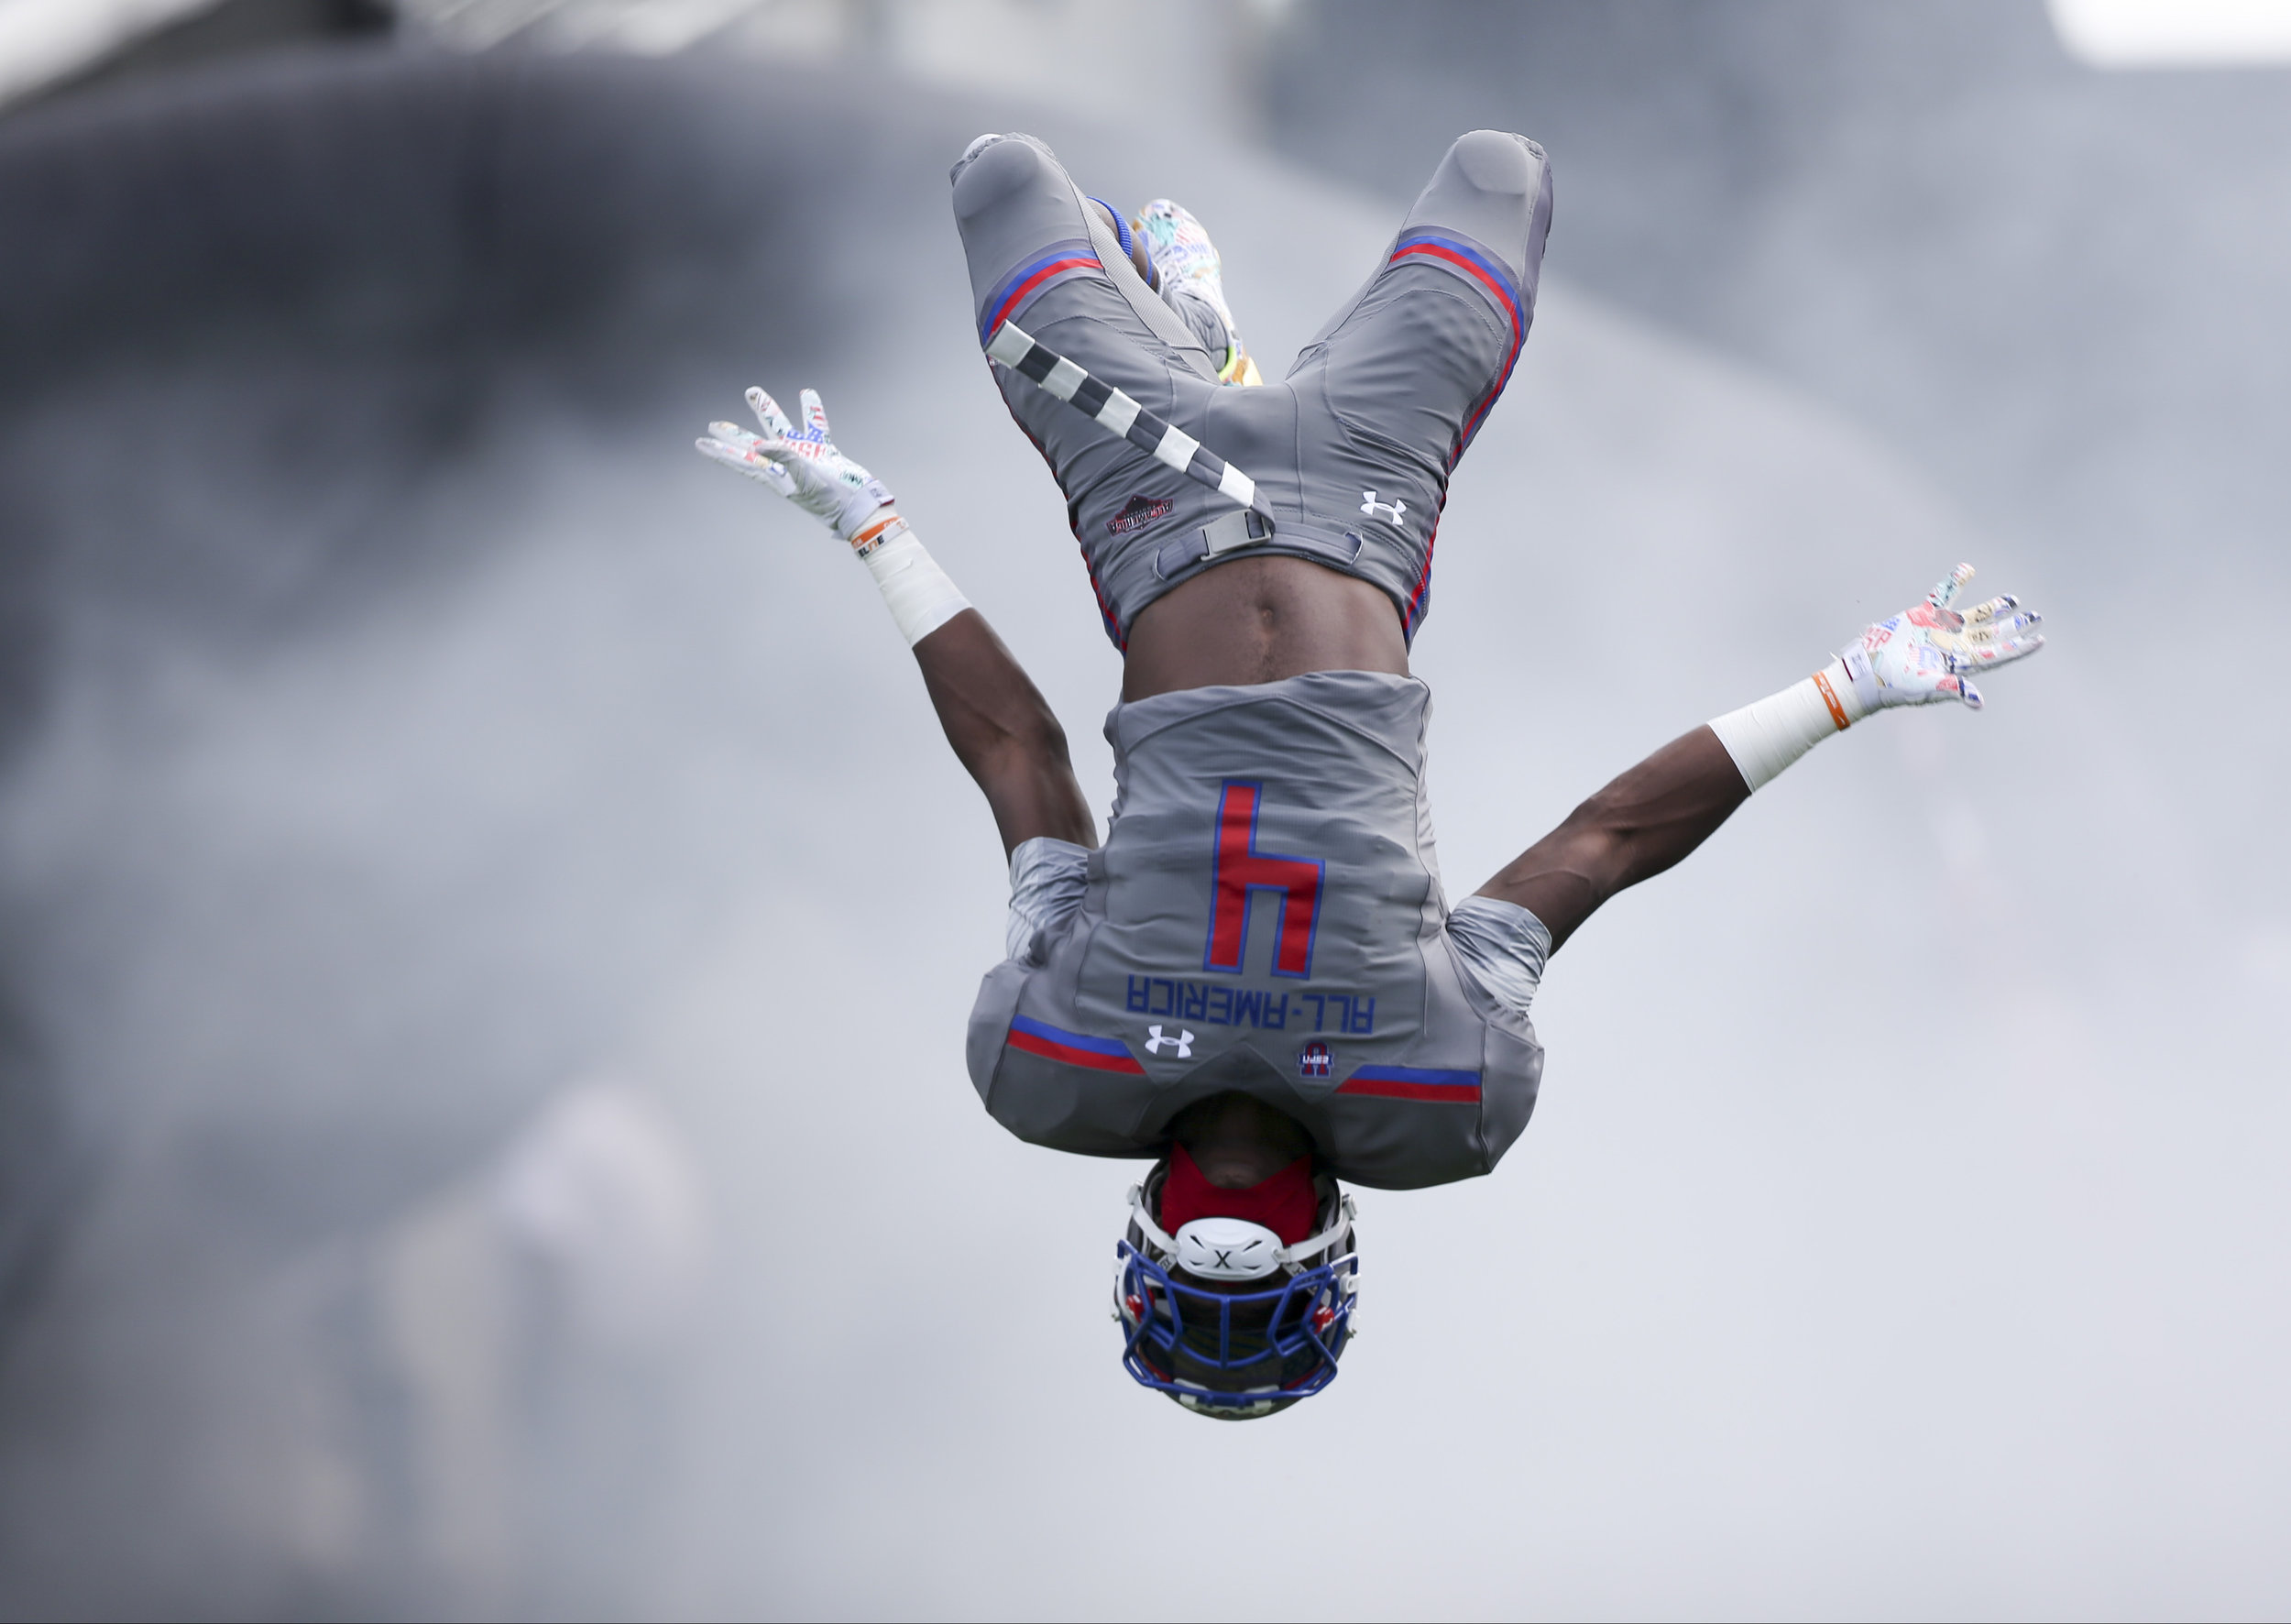 Team Armour offensive linebacker Maleik Gray (04) does a flip during the opening ceremony of the Under Armour All-America Bowl at Camping World Stadium in Orlando, Fla., on Sunday, January 1, 2017. Final score: Armor 24, Highlight 21.